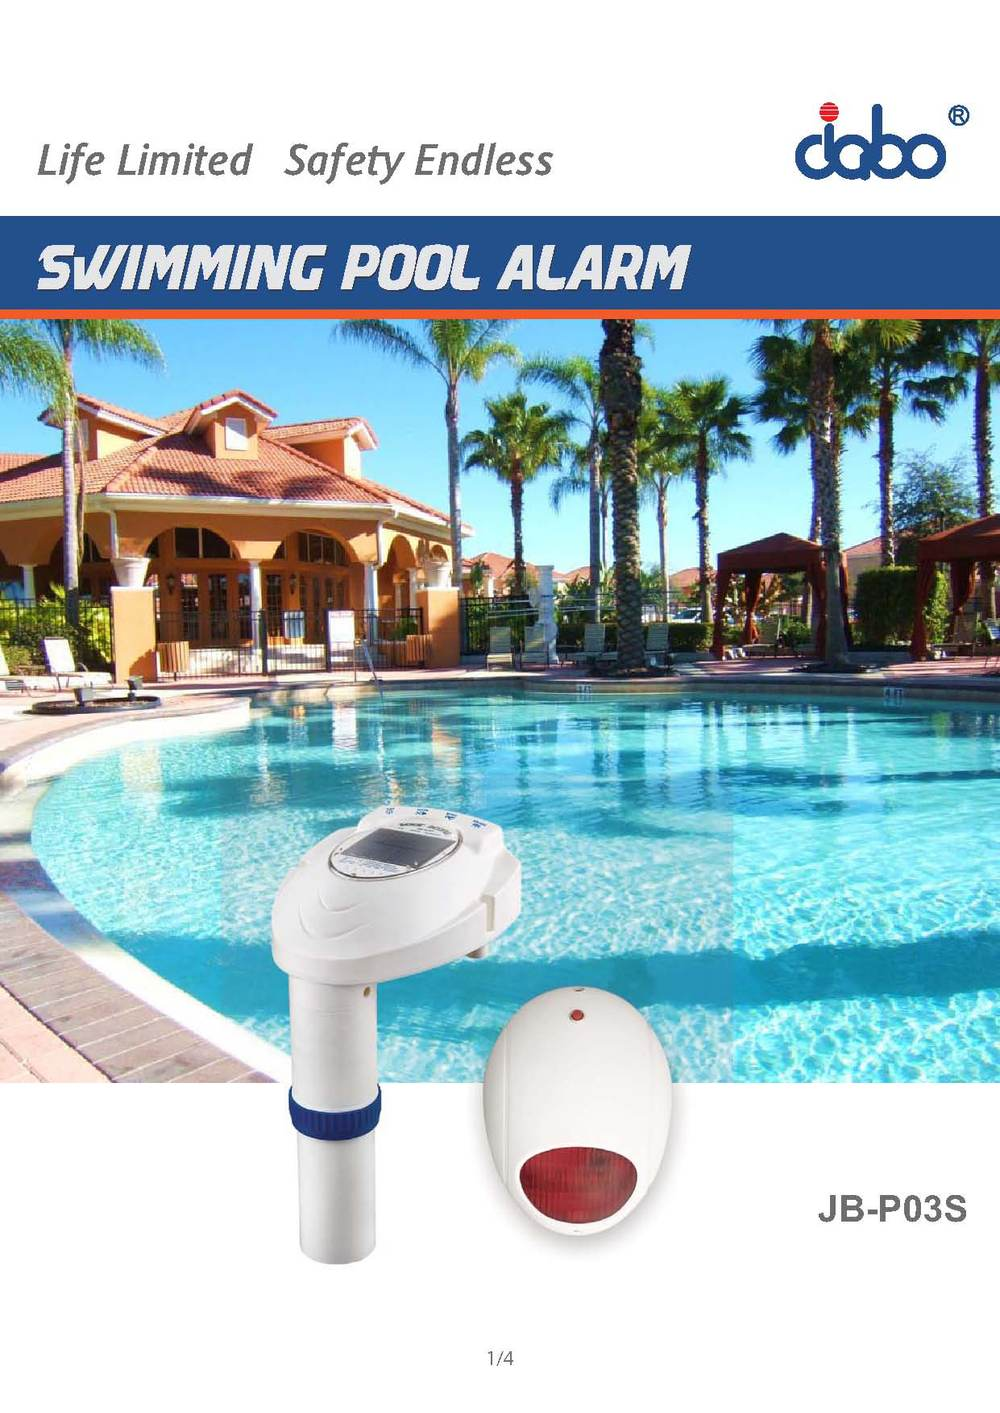 Safety And Reliable Swimming Pool Alarm For Child Guard